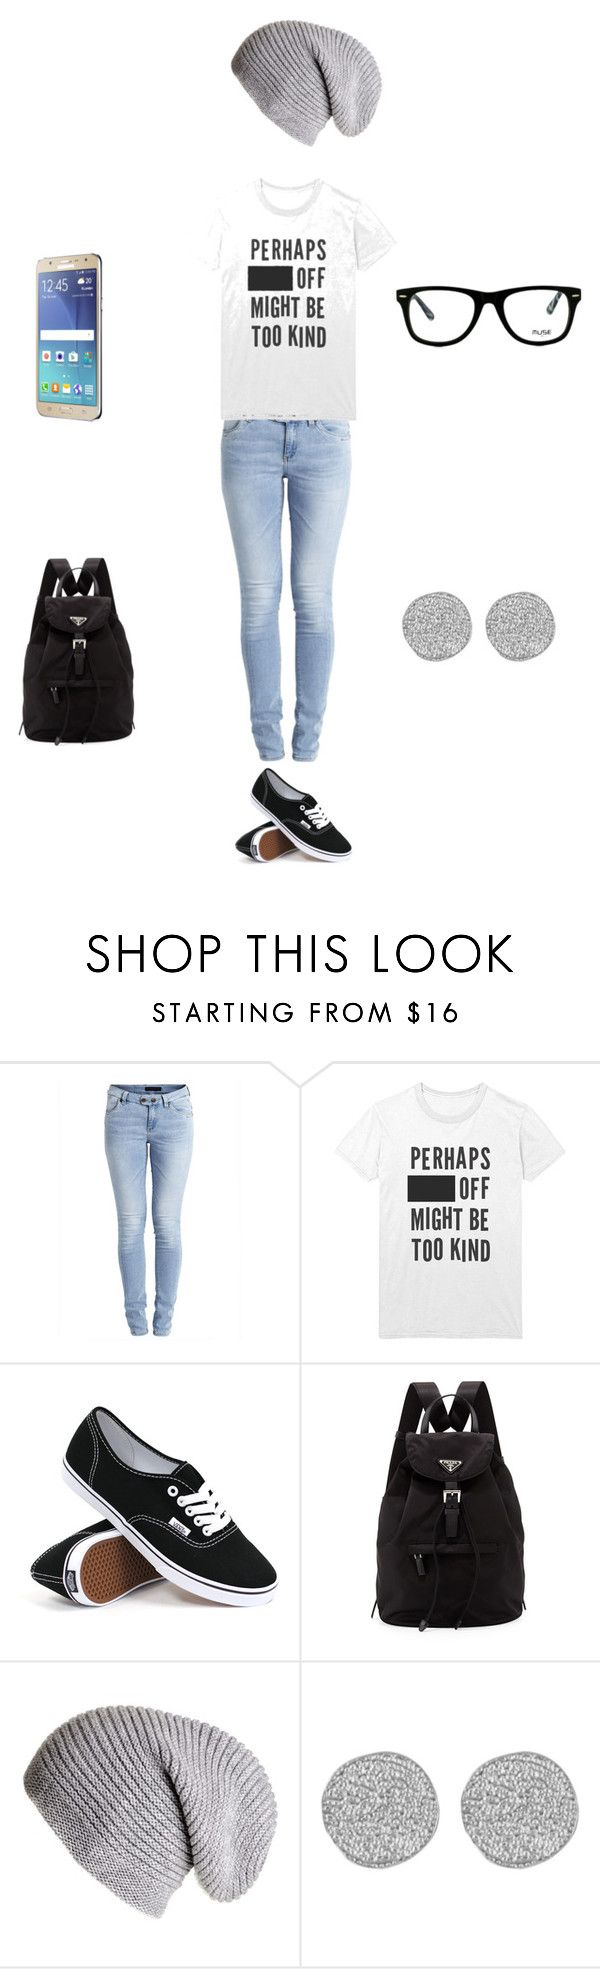 """For Katelyn"" by roxas-lightwood ❤ liked on Polyvore featuring Object Collectors Item, INDIE HAIR, Vans, Samsung, Prada, Karen Kane and Muse"